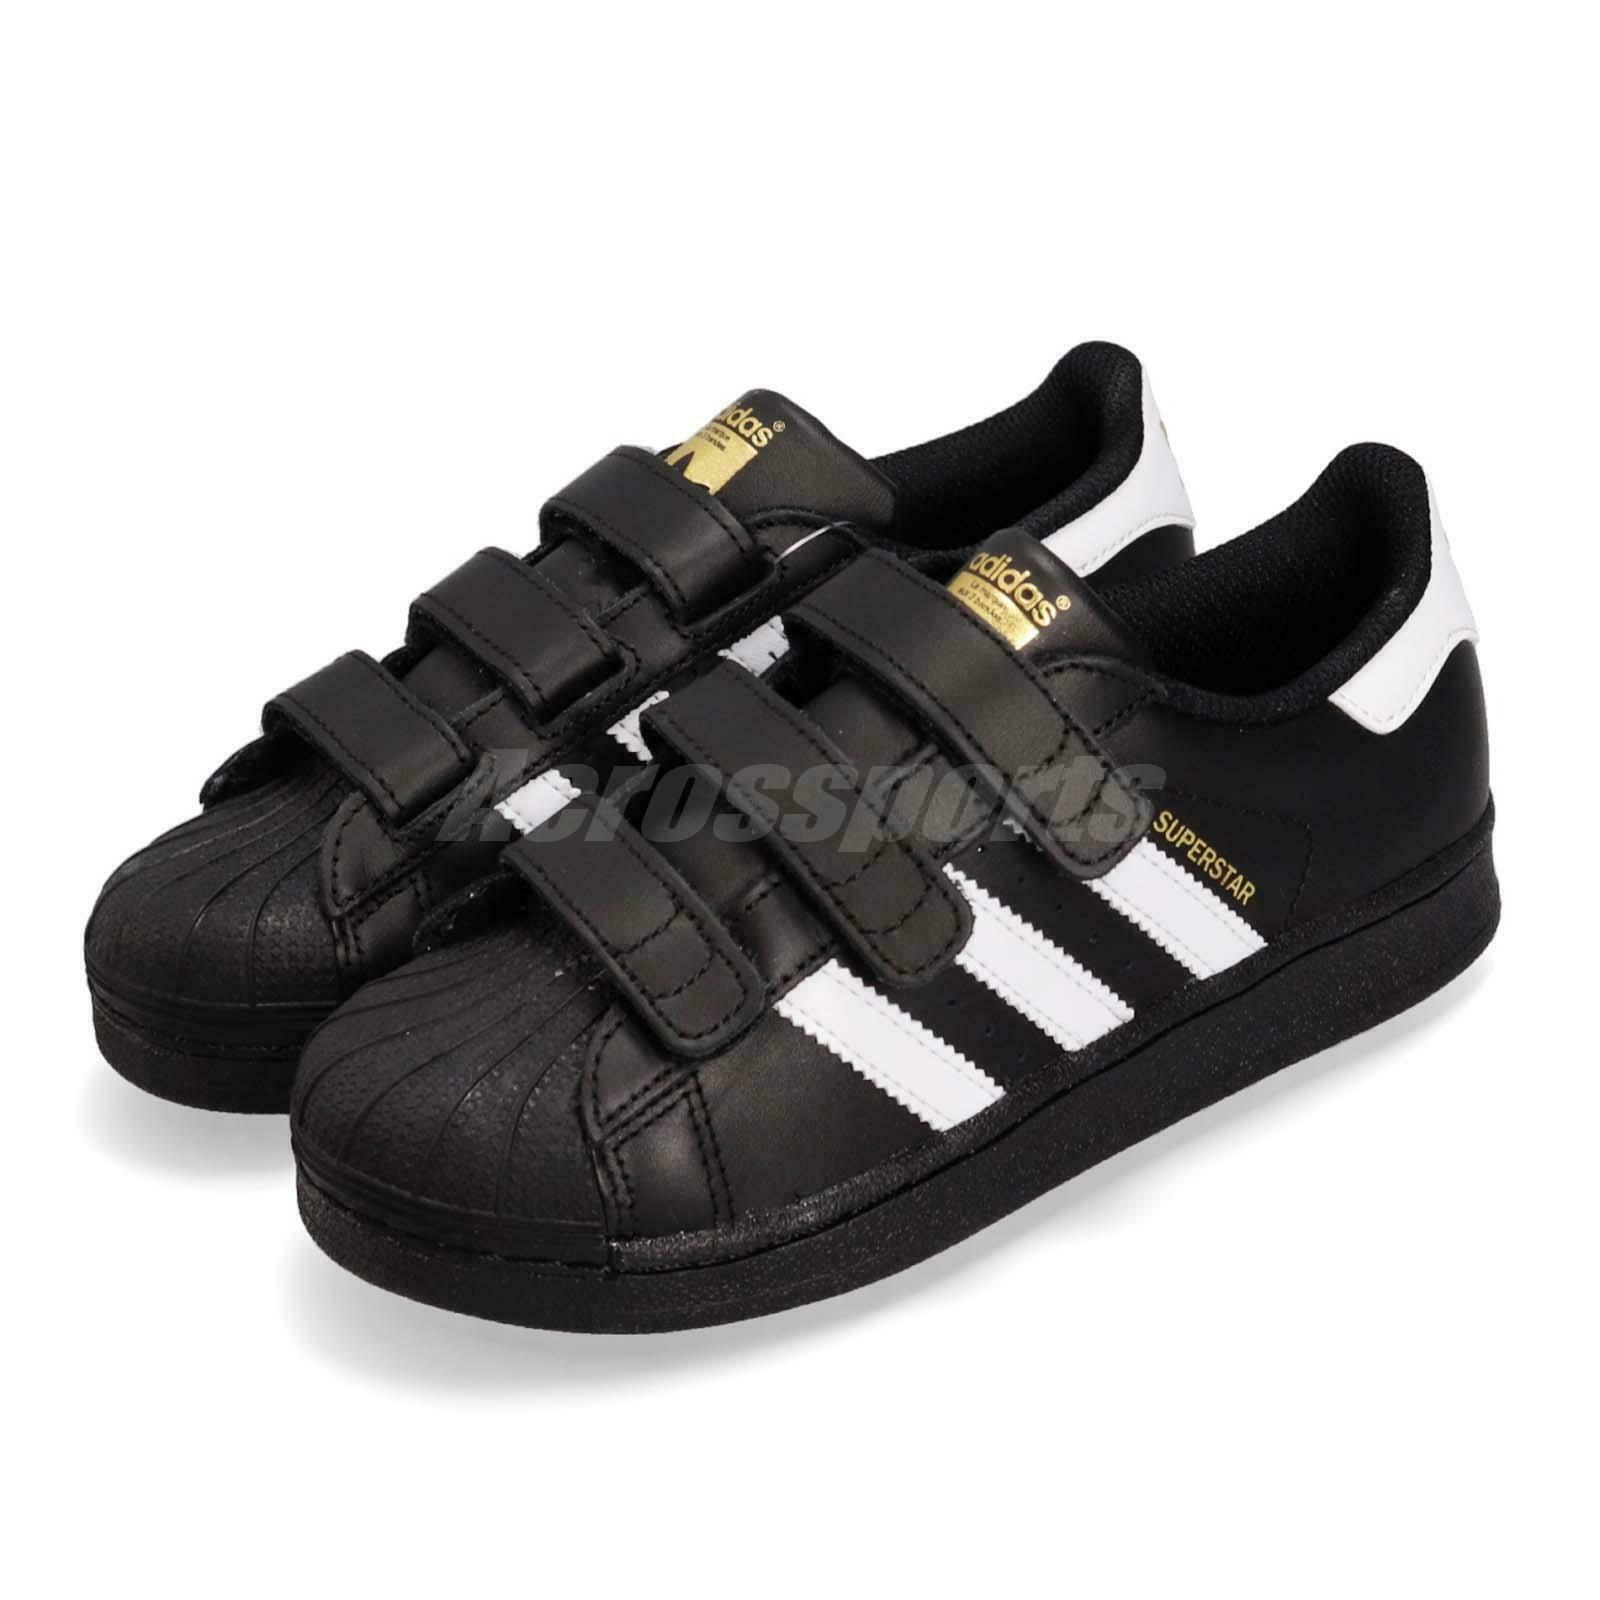 Adidas Superstar CF C Black White gold Strap Kids Casual Athletic shoes B26071